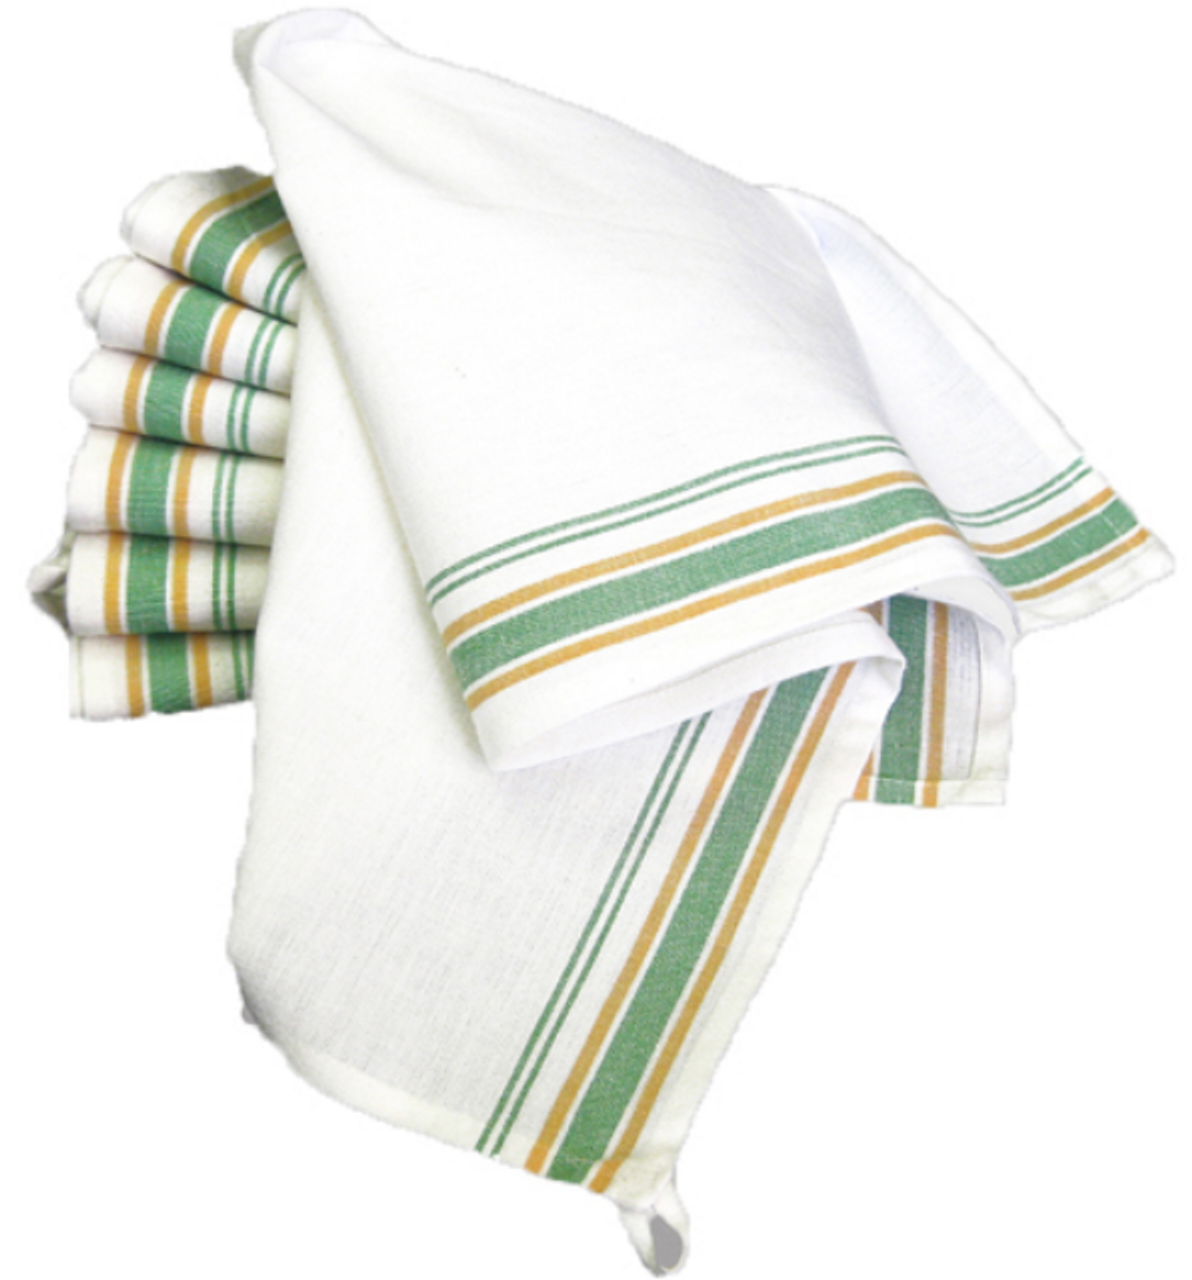 Set of 3 Vintage Style Striped Woven Farmhouse Dish Towels - C